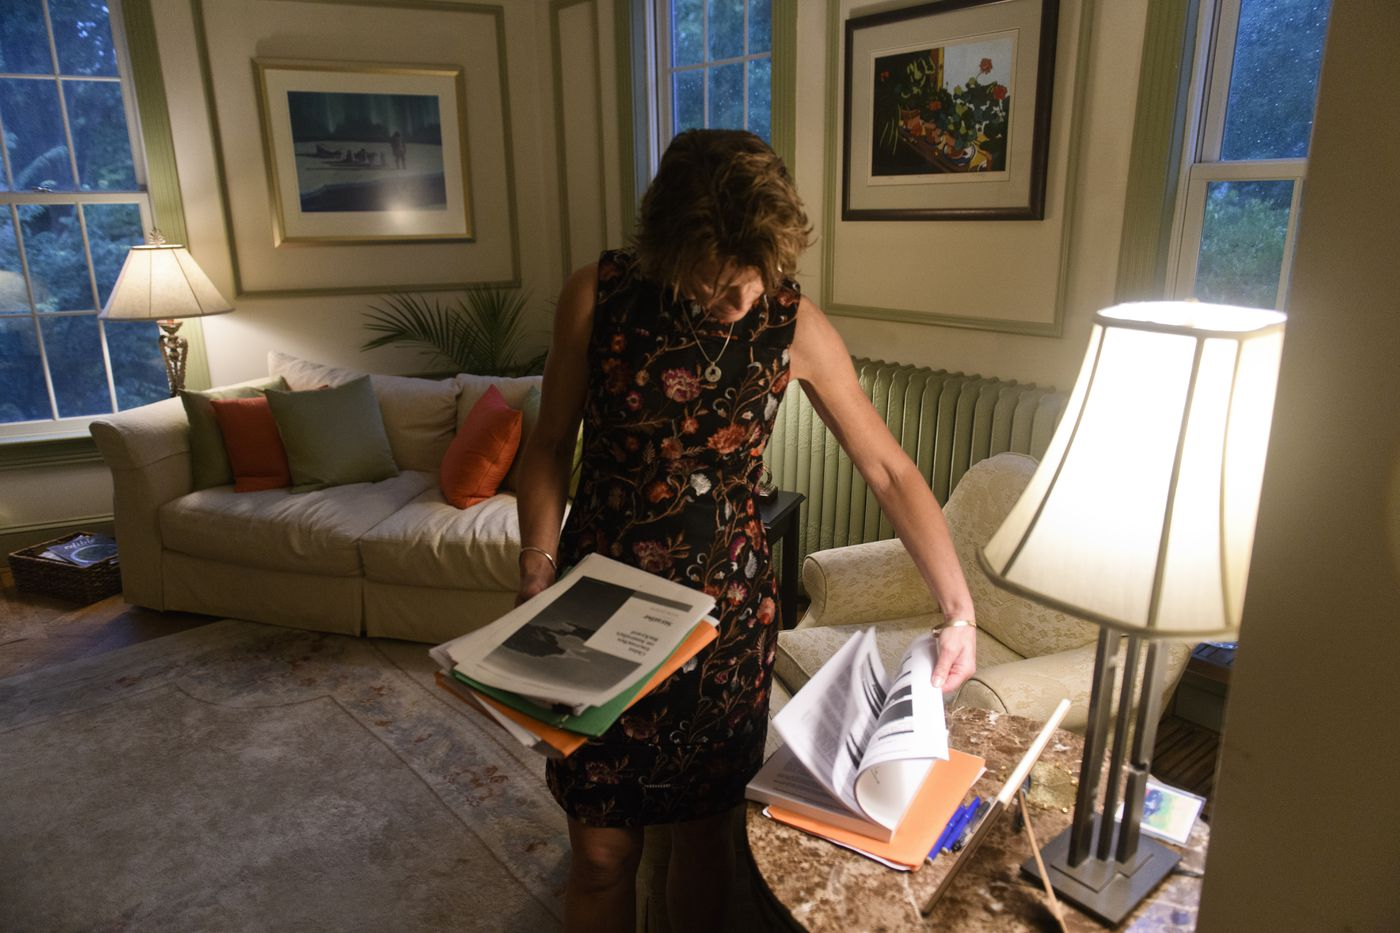 Sen. Lisa Murkowski holds a stack of her 'homework ' reading and browses another stack, which includes a copy of the Mueller Report, in her Washington living room on June 18, 2019. (Marc Lester / ADN)